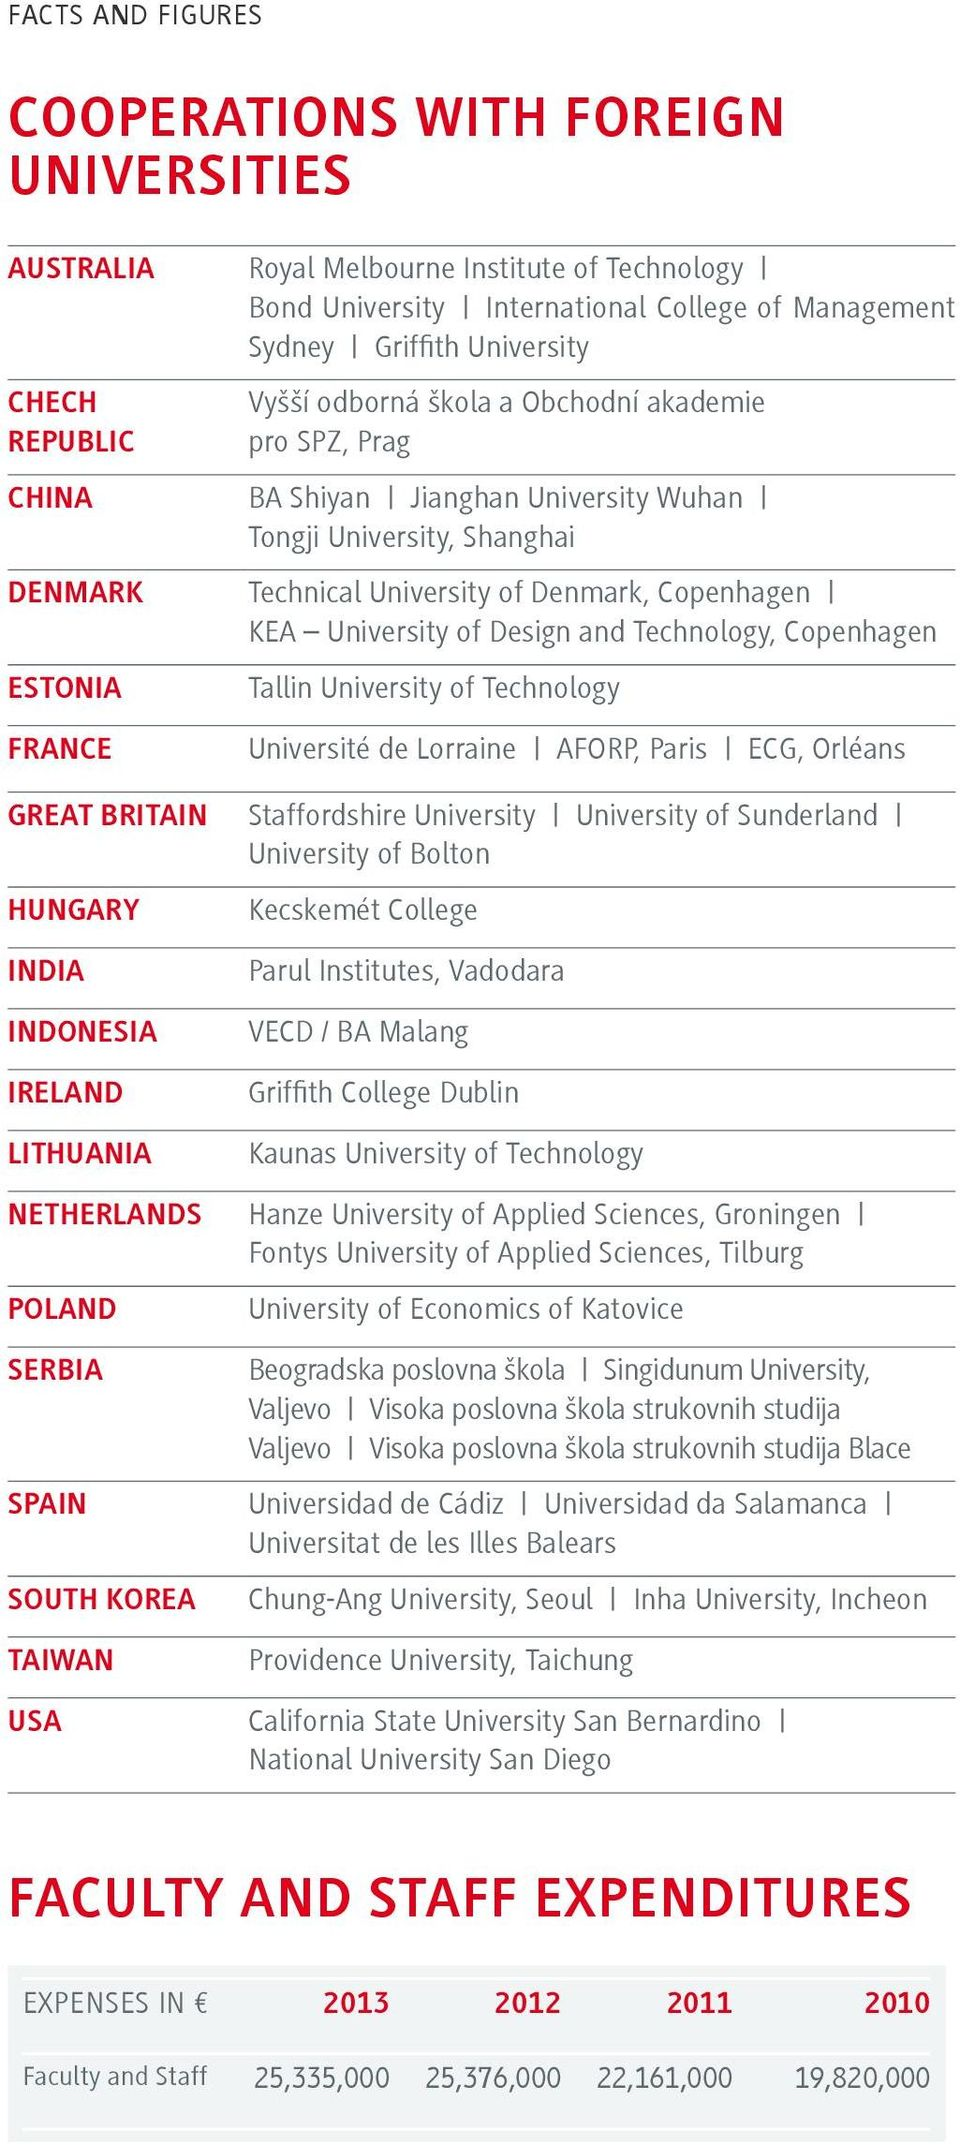 Technology, Copenhagen ESTONIA FRANCE Tallin University of Technology Université de Lorraine AFORP, Paris ECG, Orléans GREAT BRITAIN Staffordshire University University of Sunderland University of